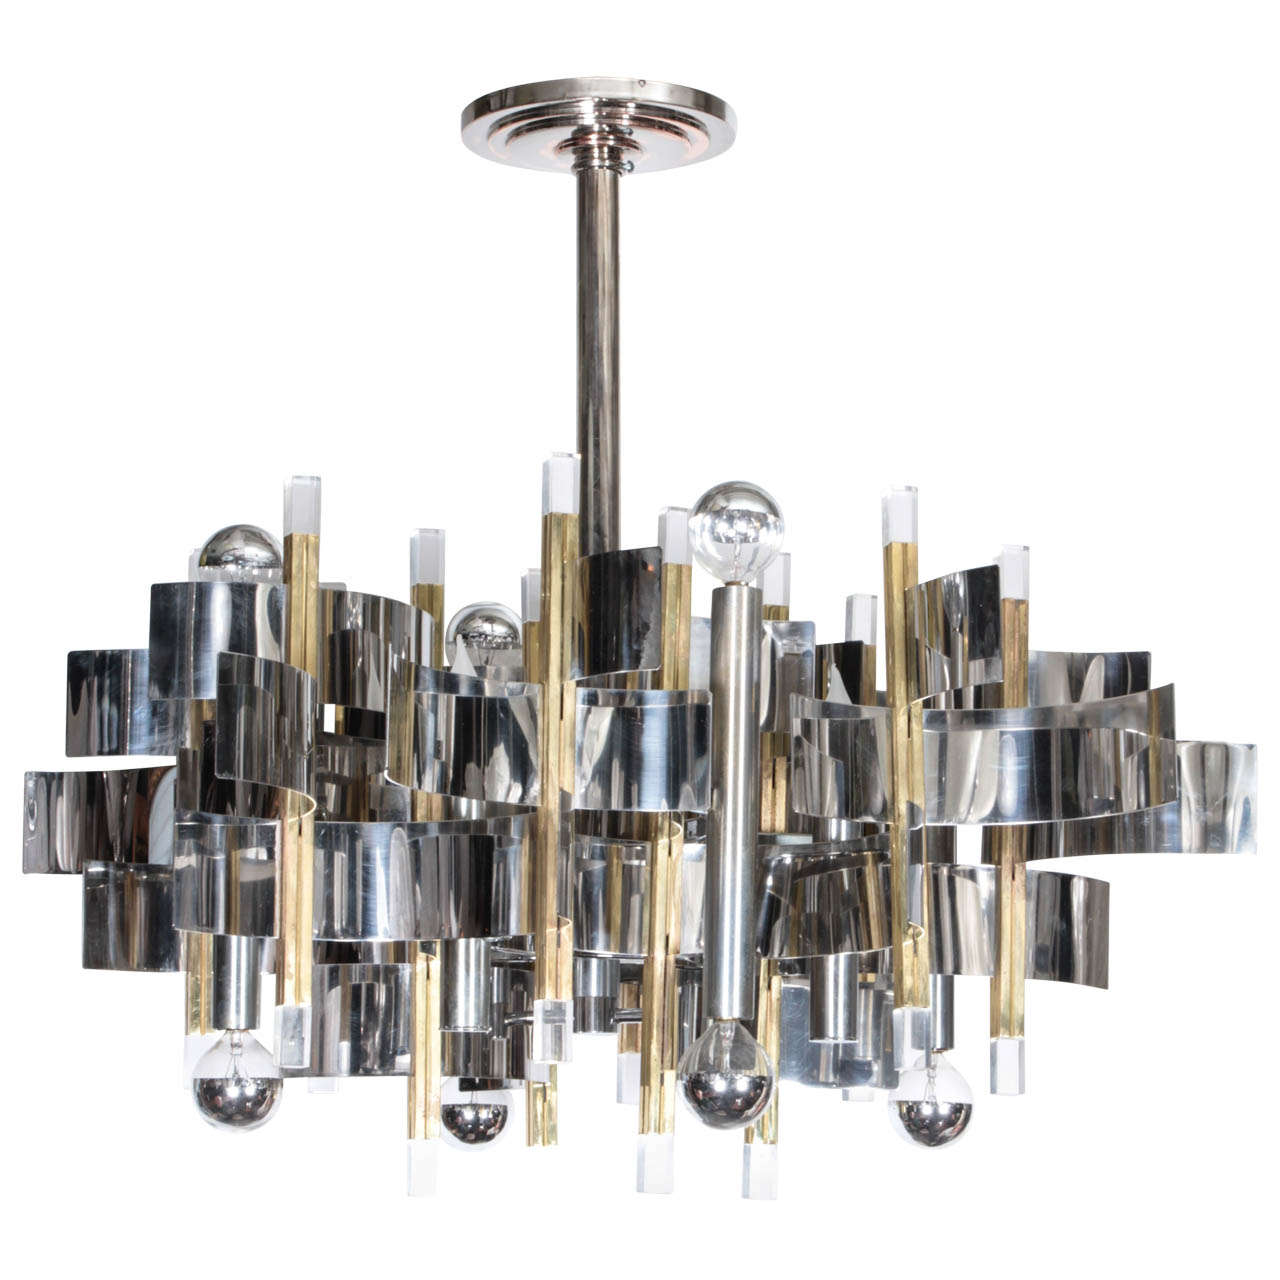 Gaetano sciolari two tone twelve light mid century modern chandelier gaetano sciolari two tone twelve light mid century modern chandelier for sale mozeypictures